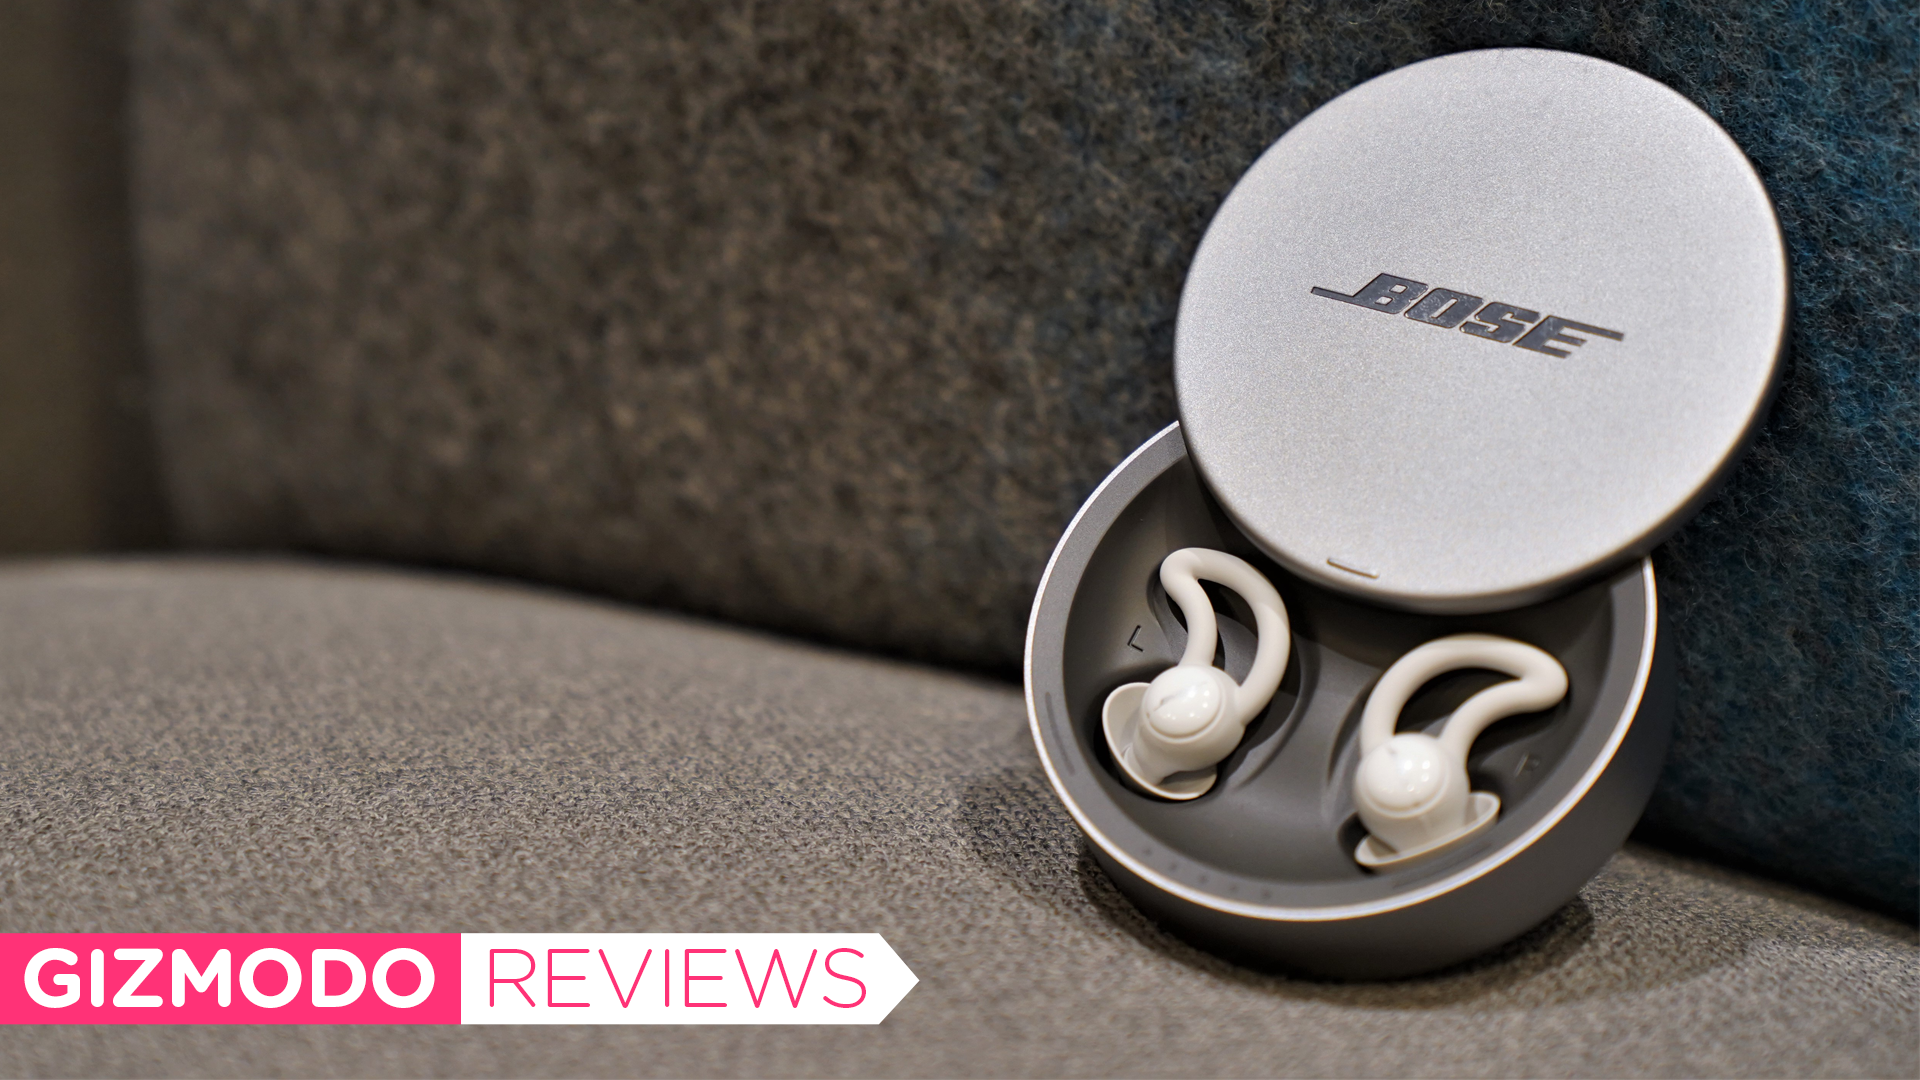 Bose Has A Pricey Winner With Its Sleep-Friendly Earbuds